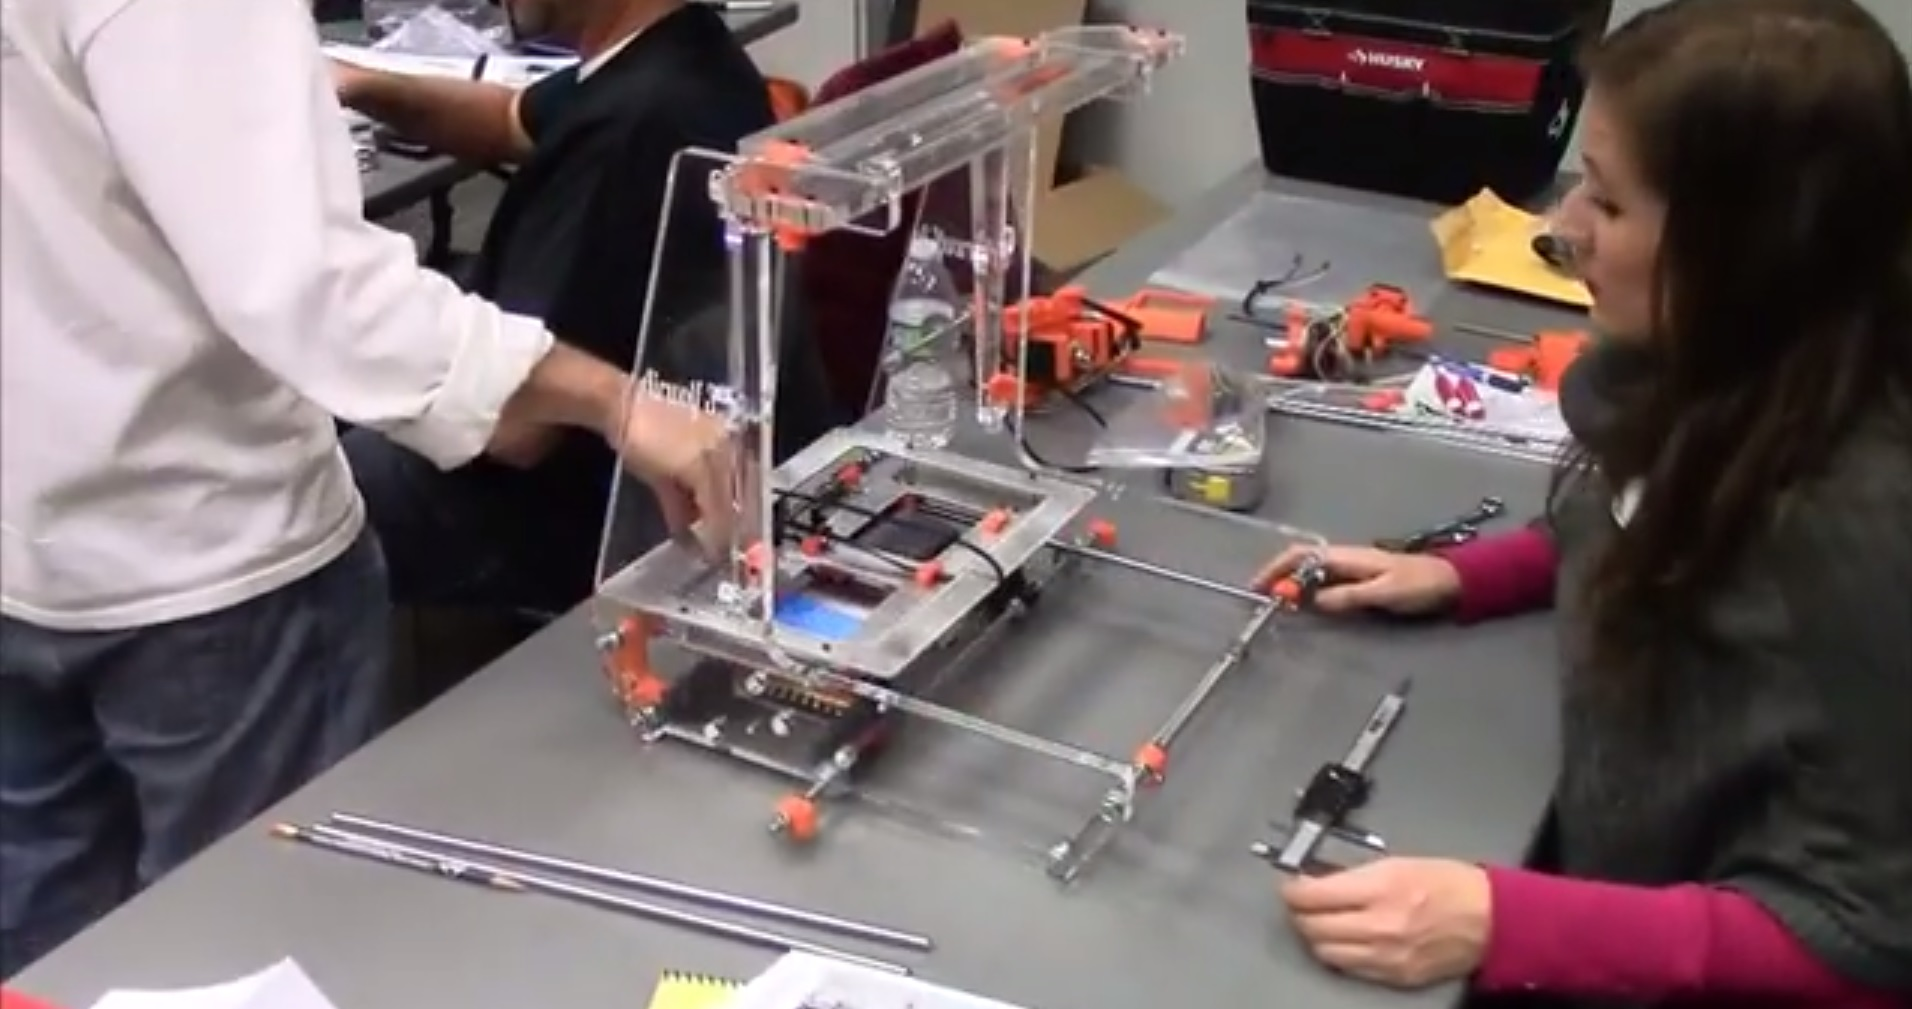 Teachers Build 3D Printers for the Classroom